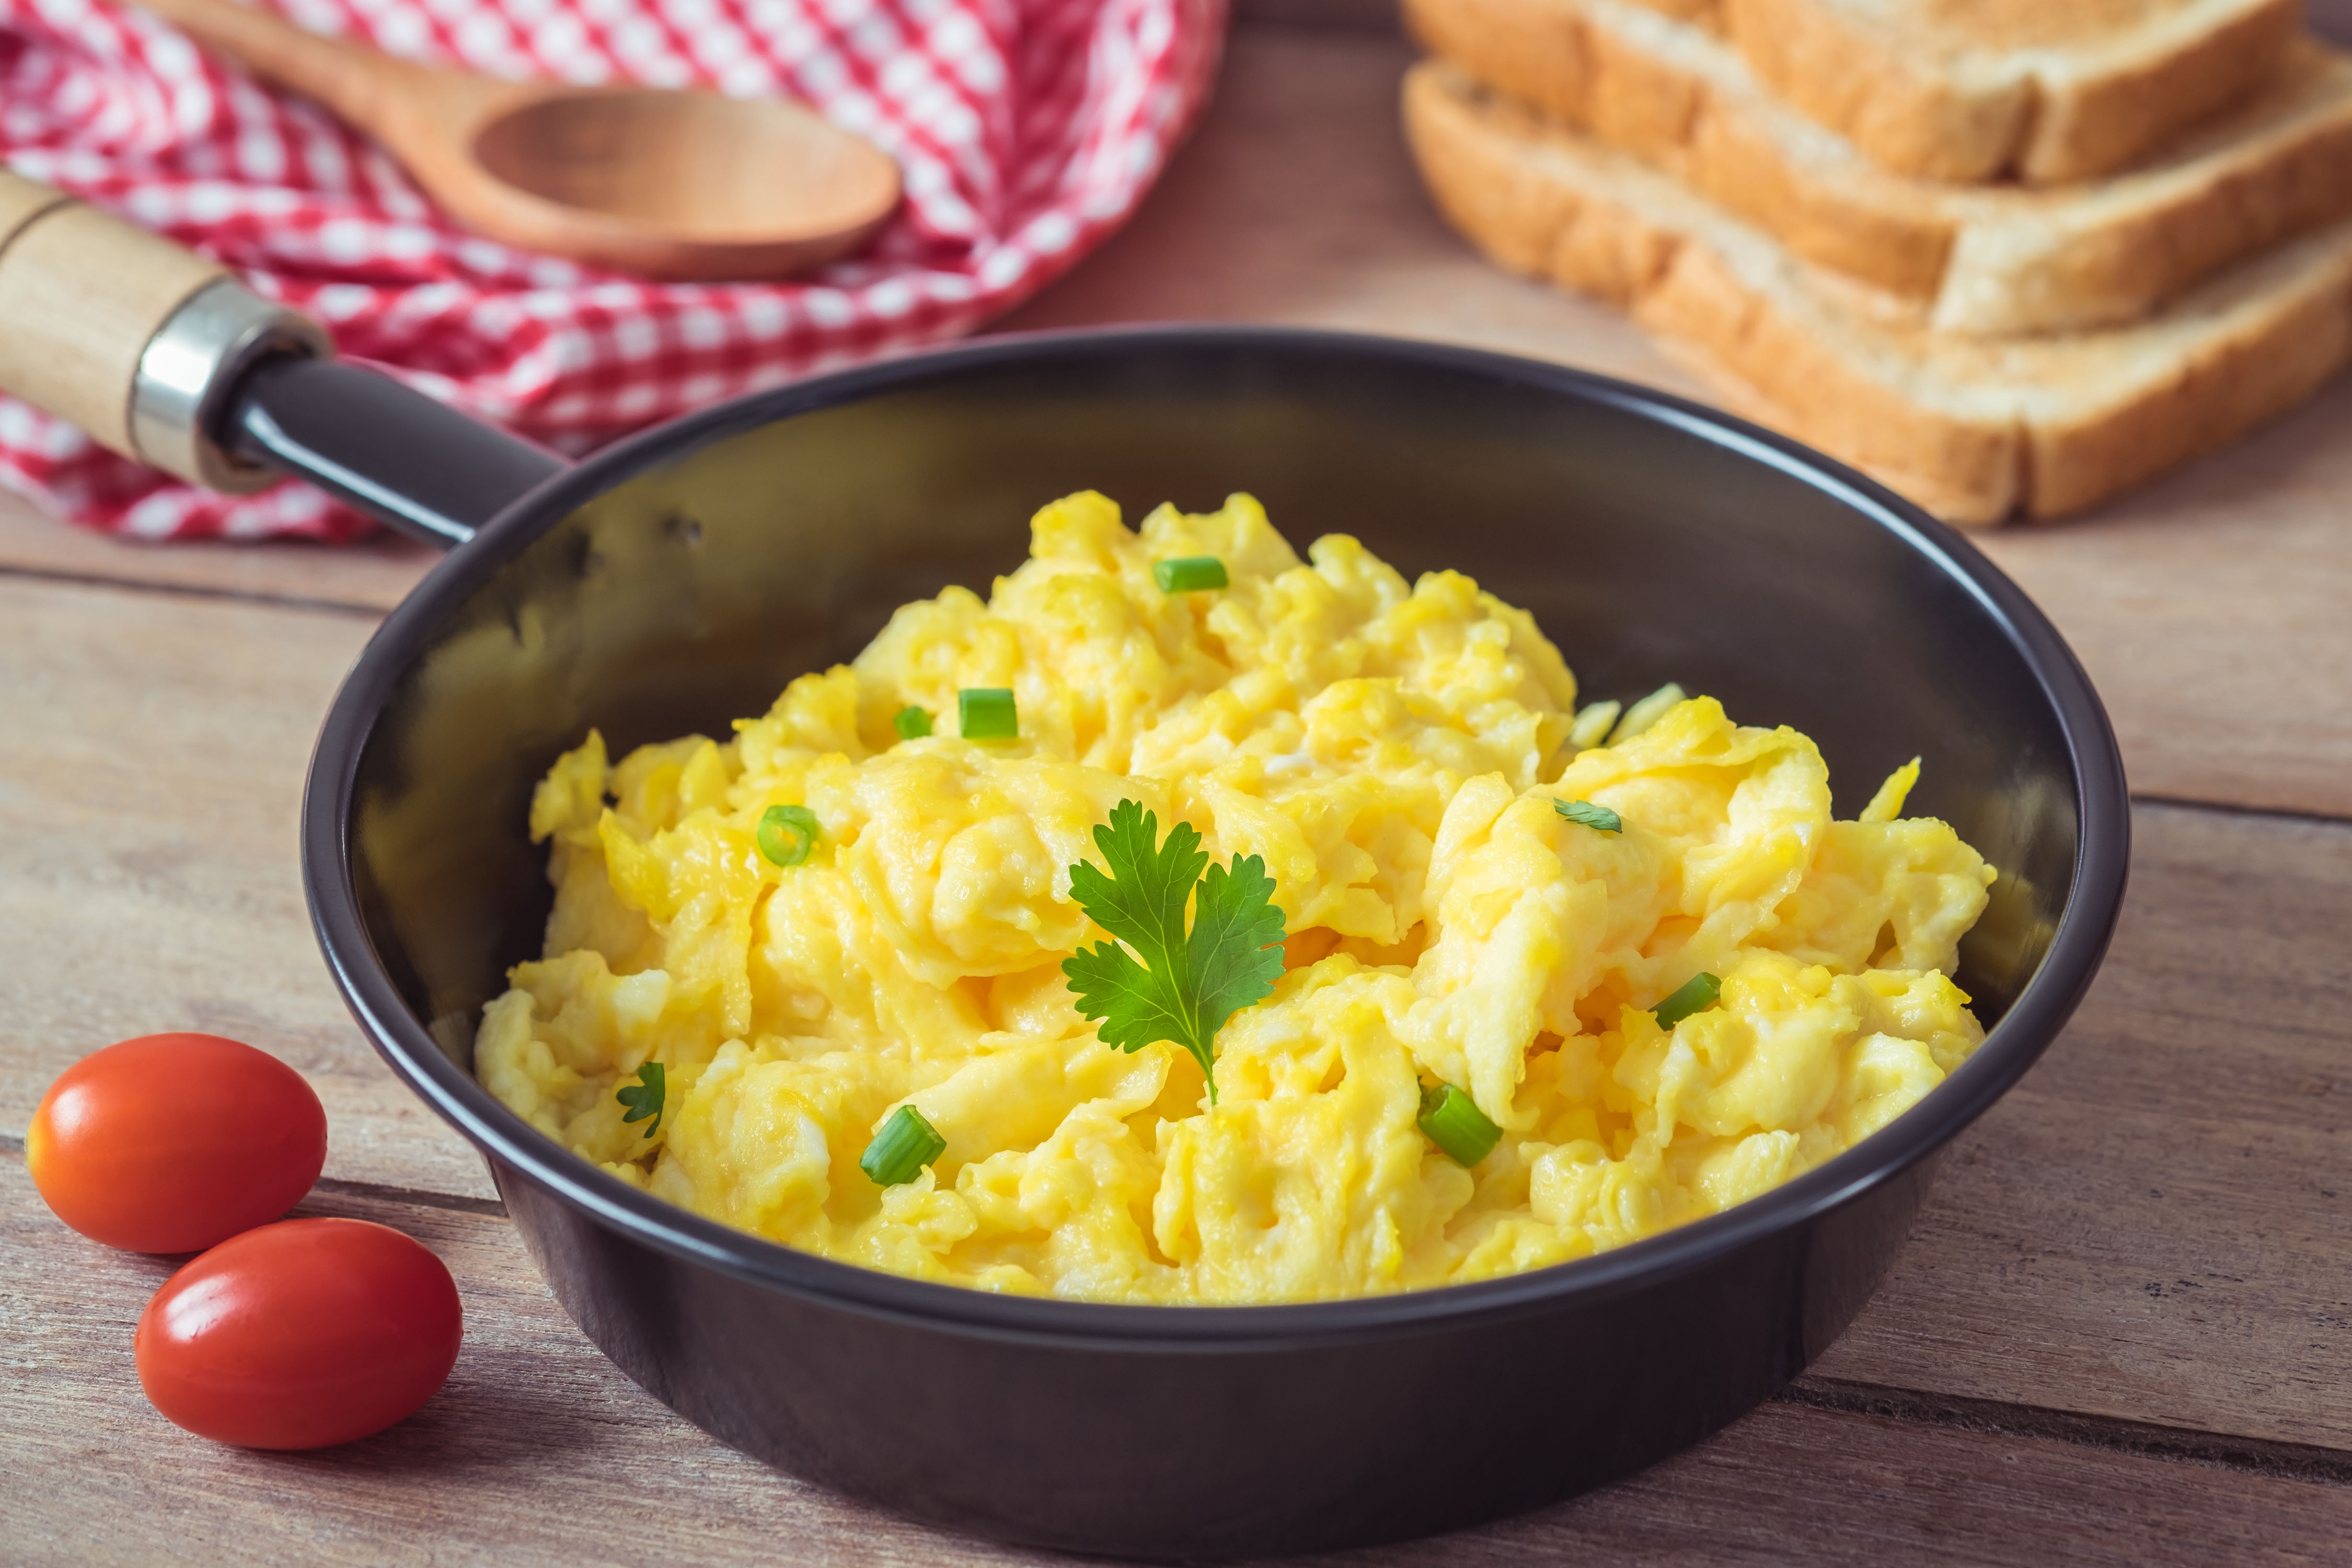 WATCH: Why Adding Milk To Your Scrambled Eggs Is a Mistake